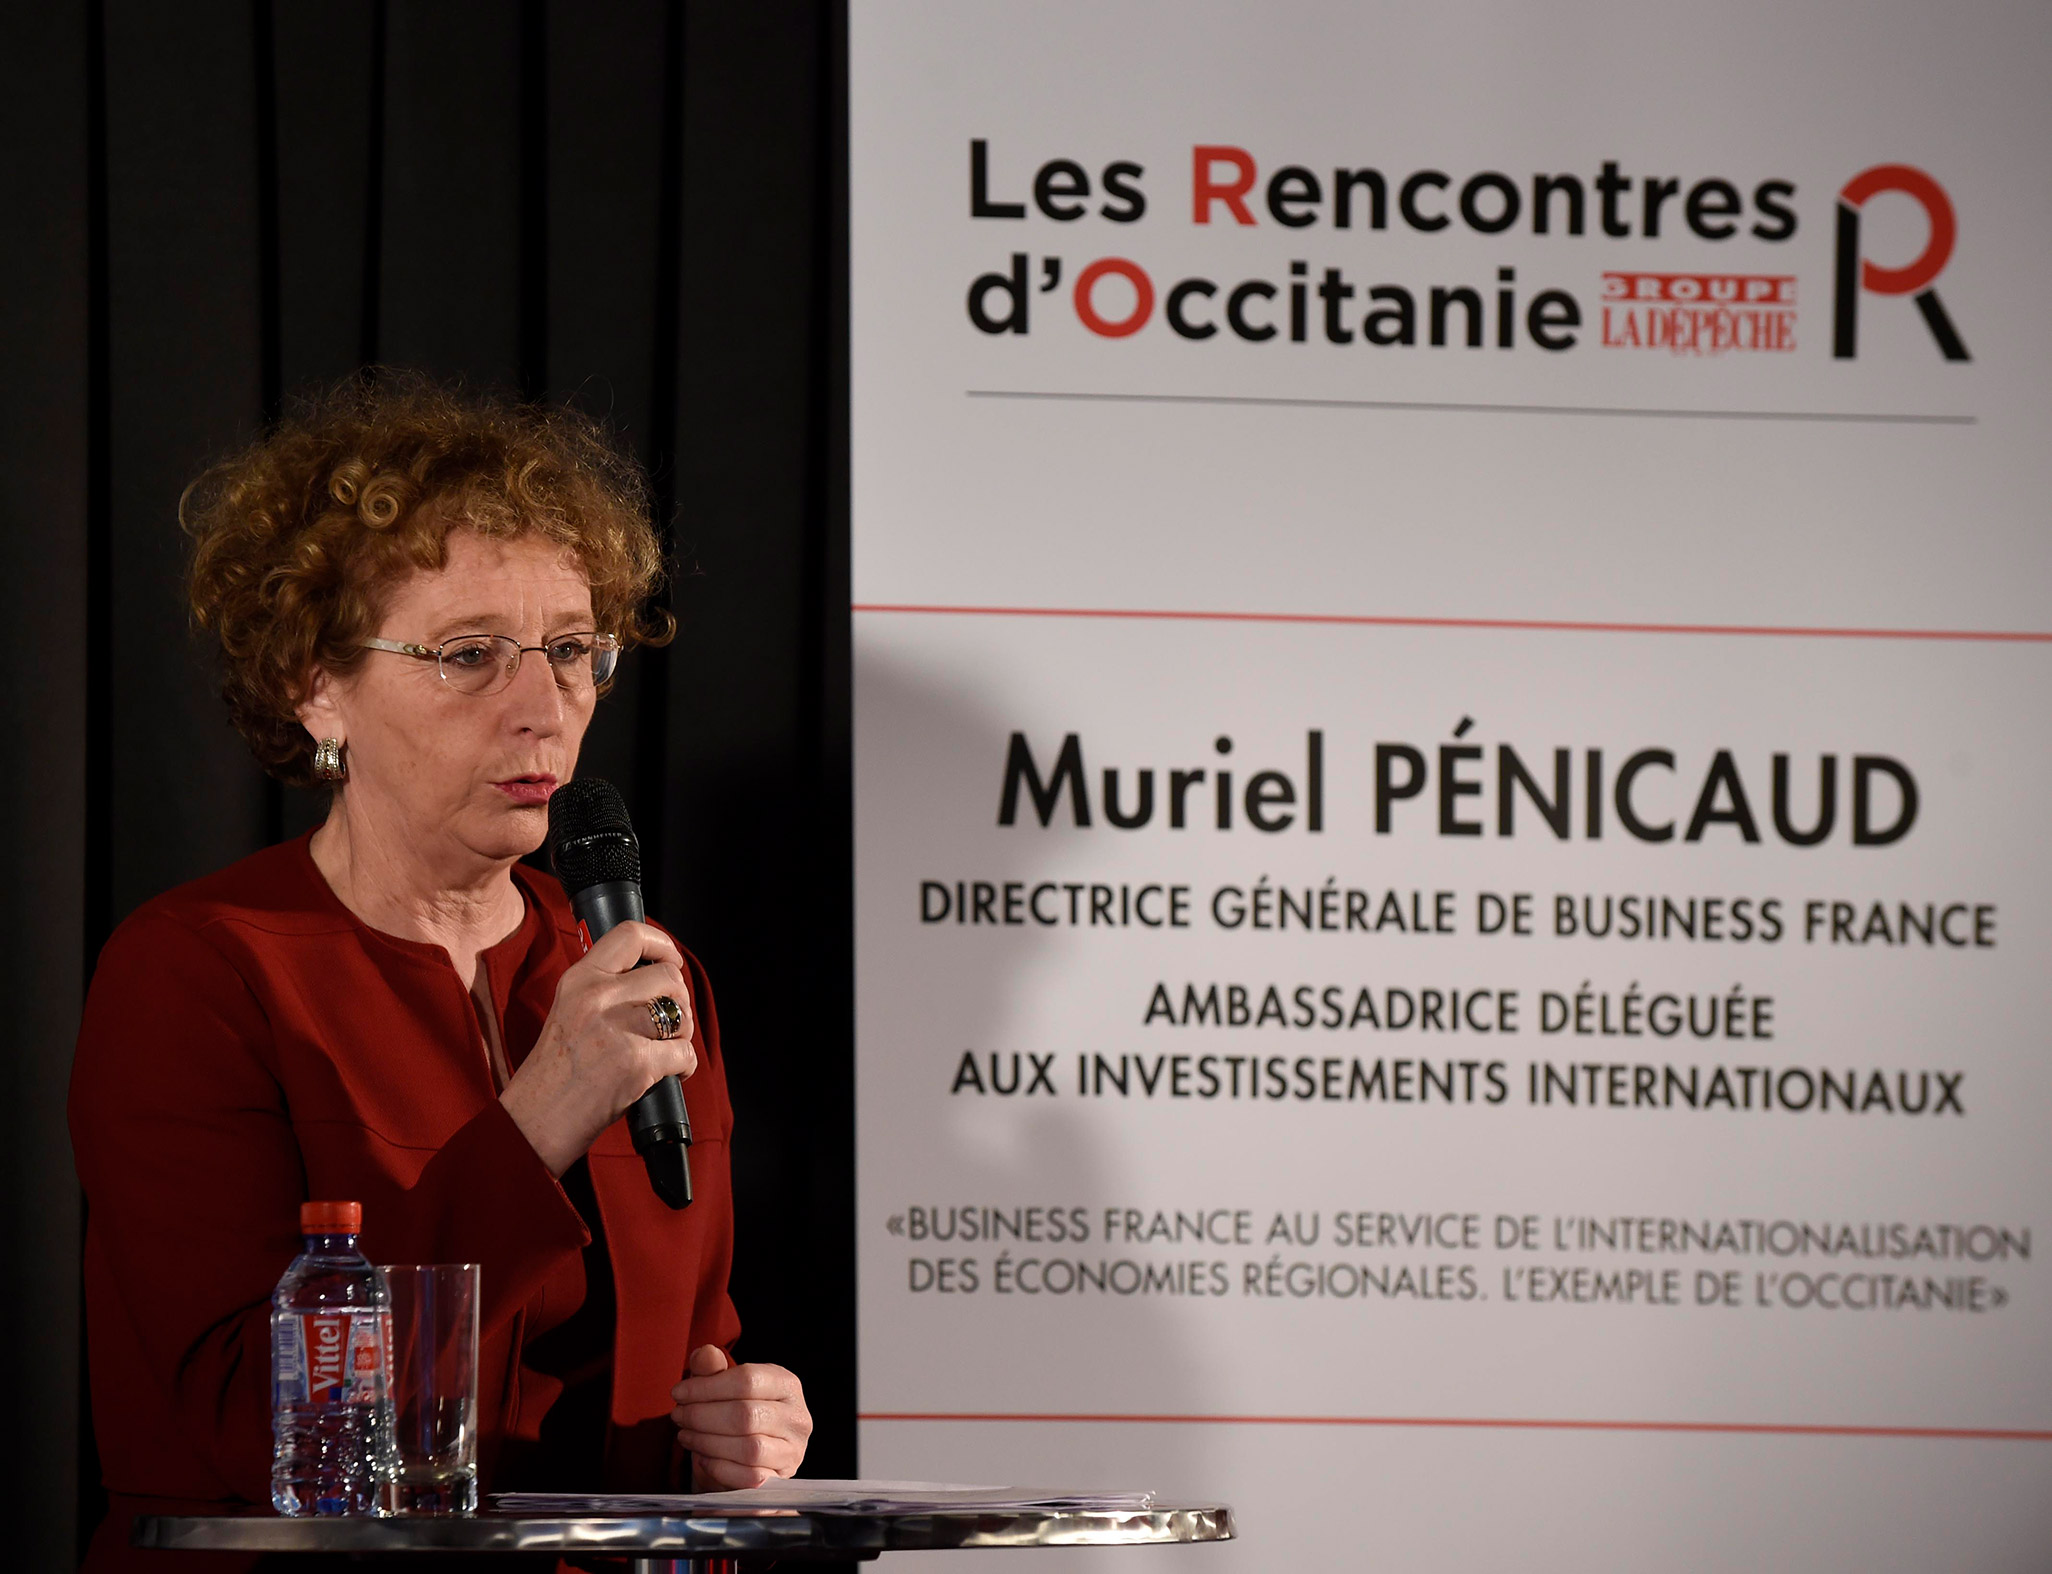 Muriel PÉNICAUD, DG de Business France